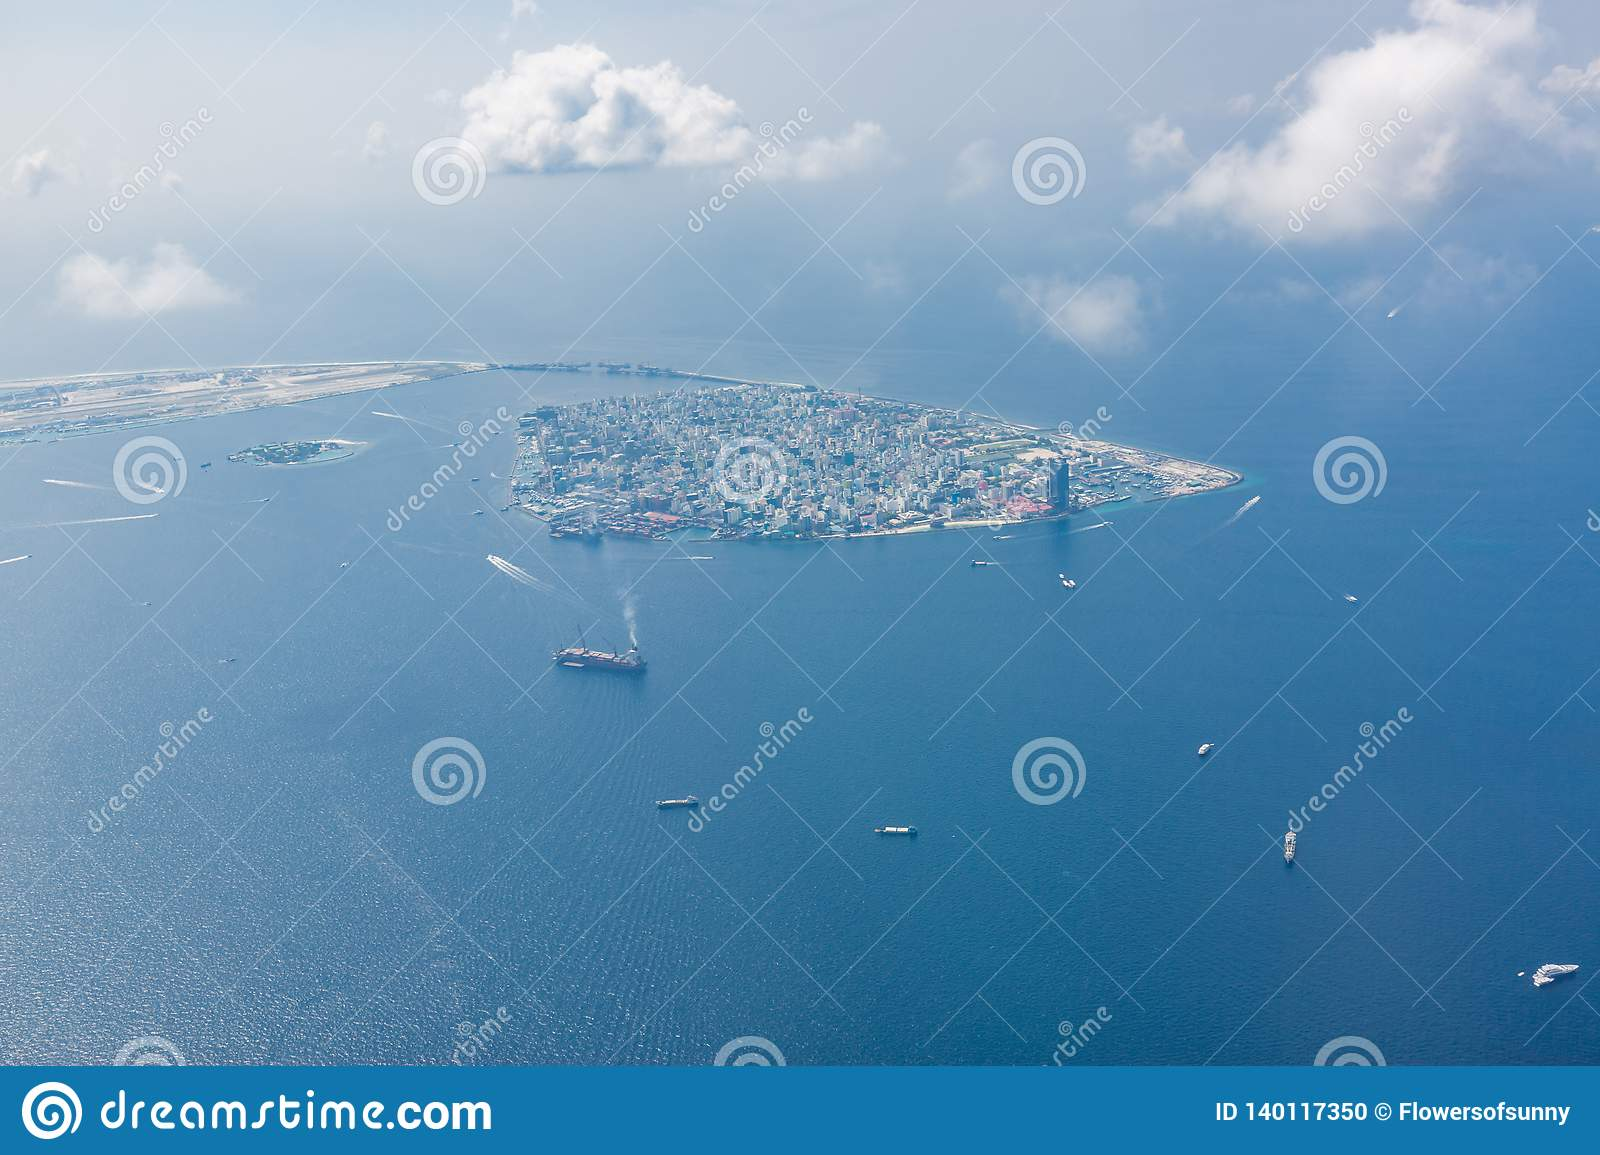 Maldivian Capital City Male From Above Blue Sea And Boats